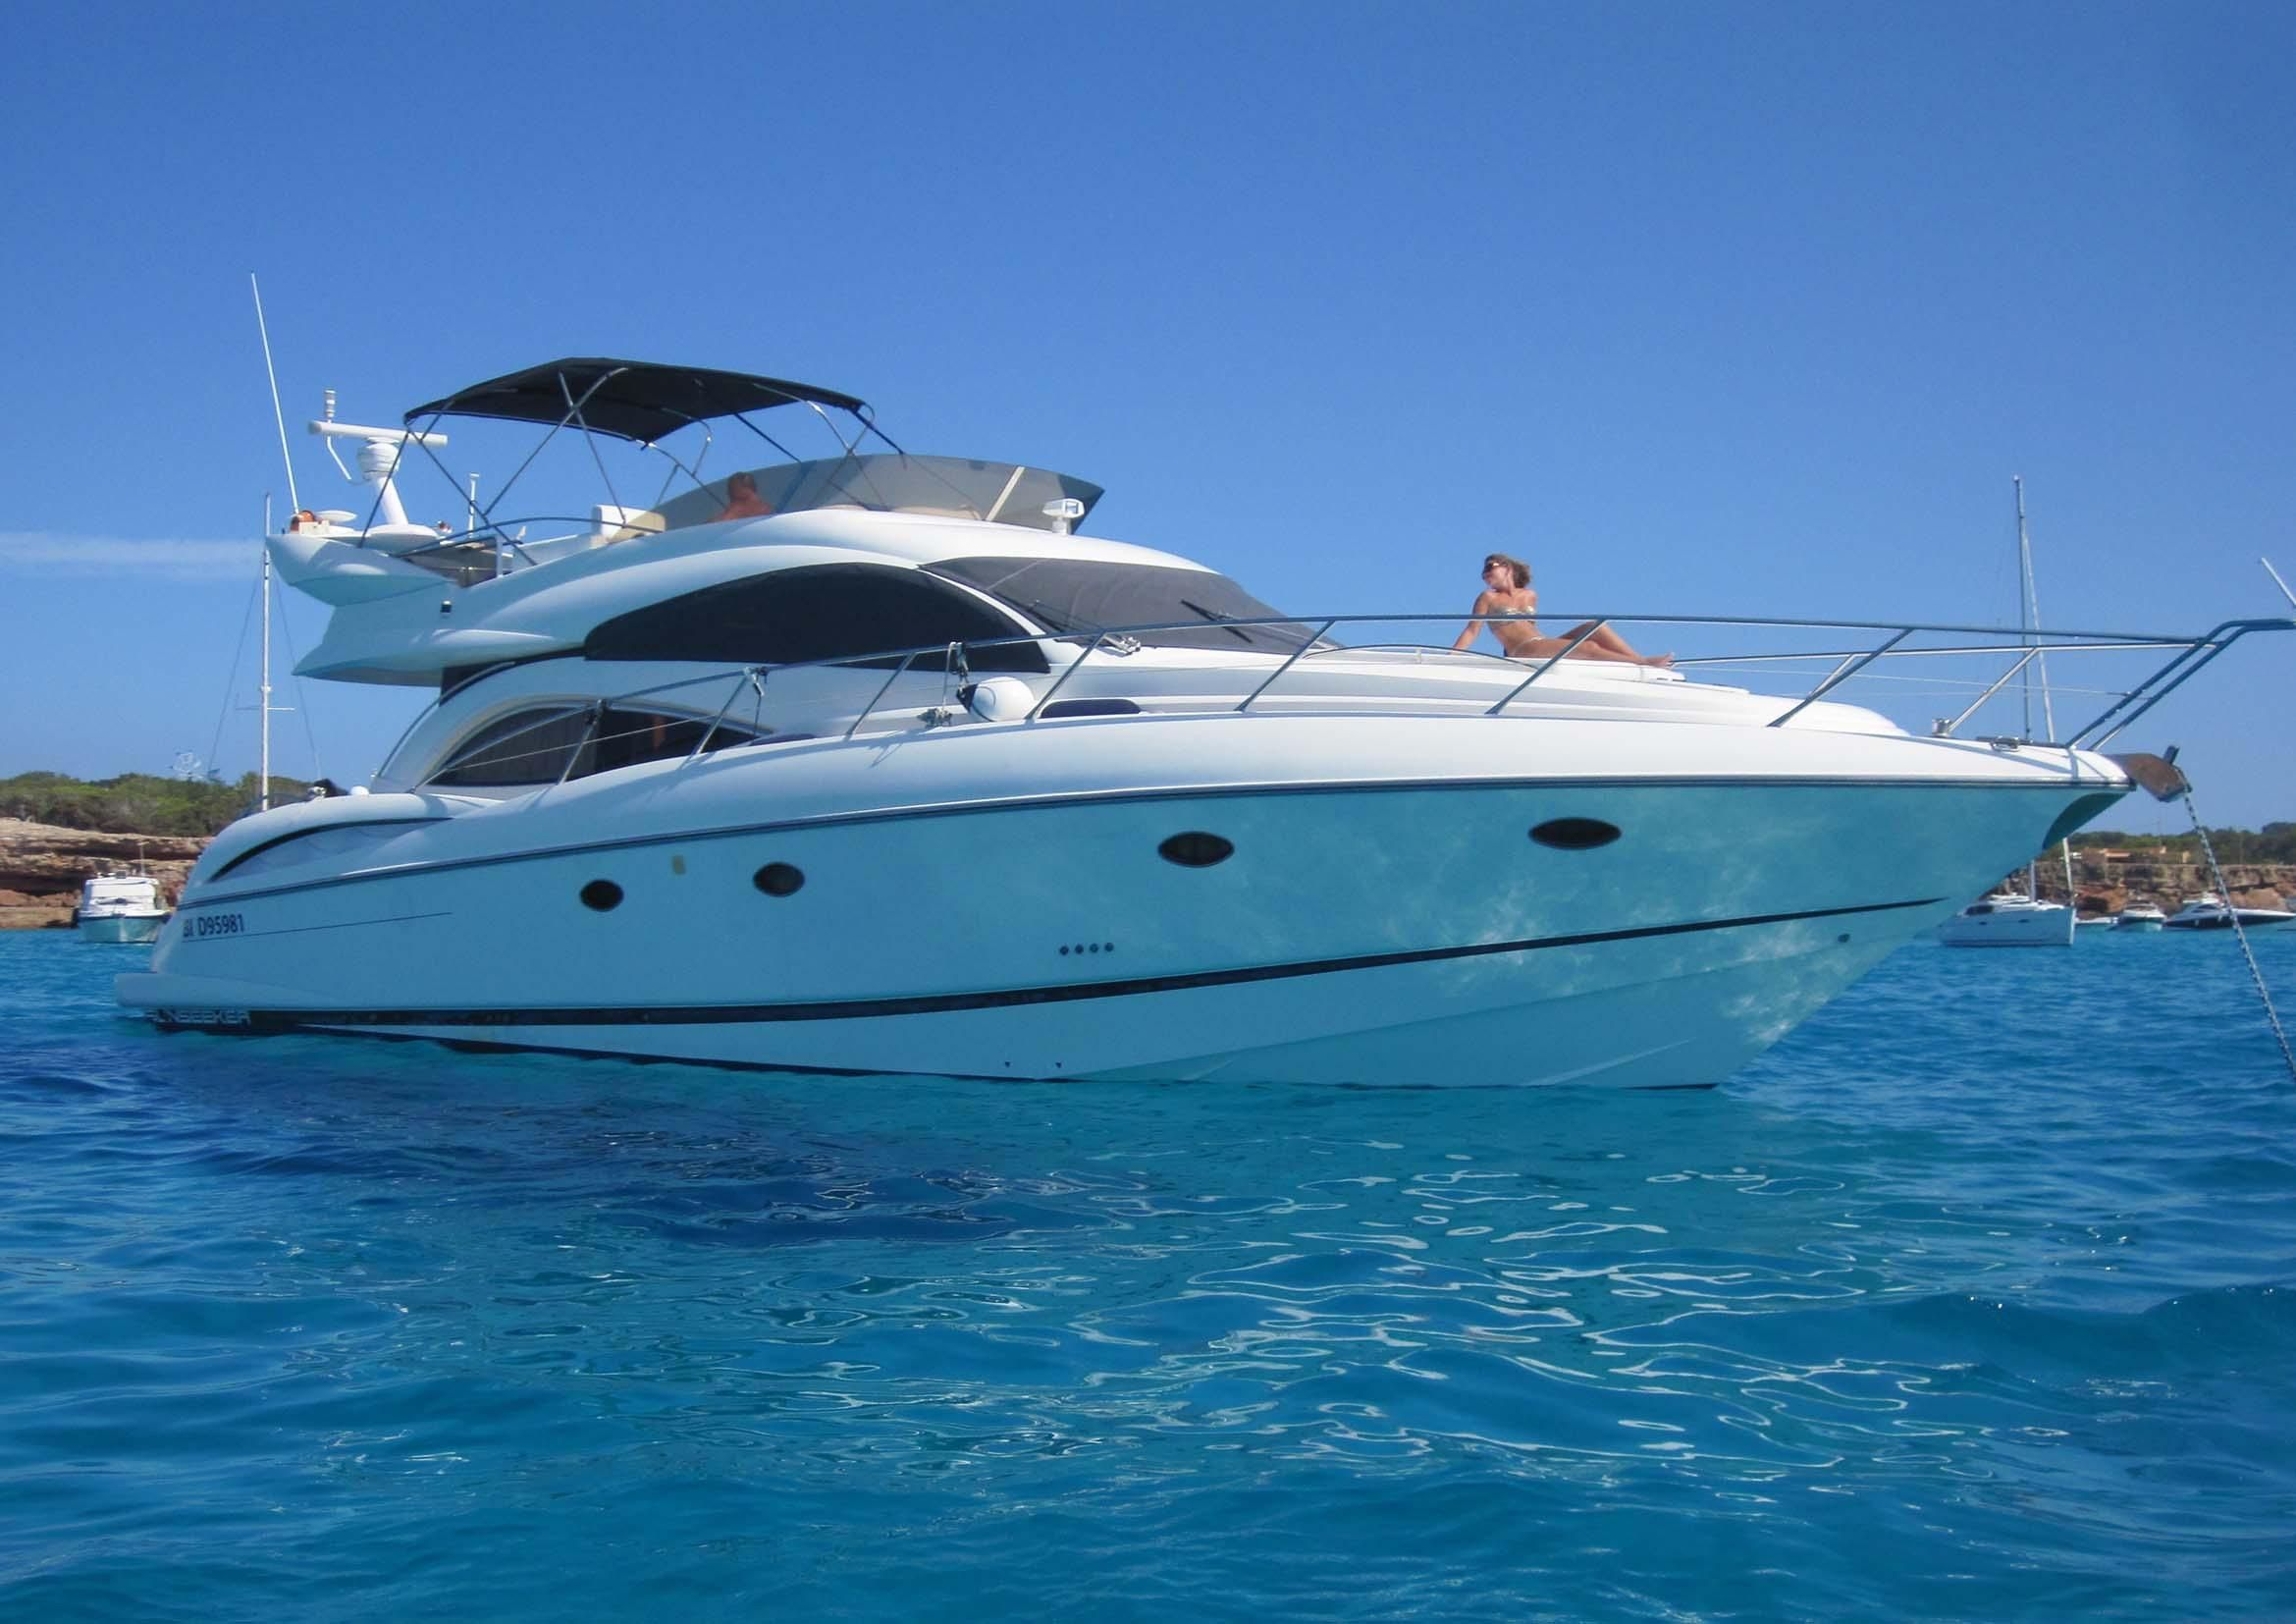 Sunseeker Manhattan 56 buyers guide: An unashamedly traditional flybridge